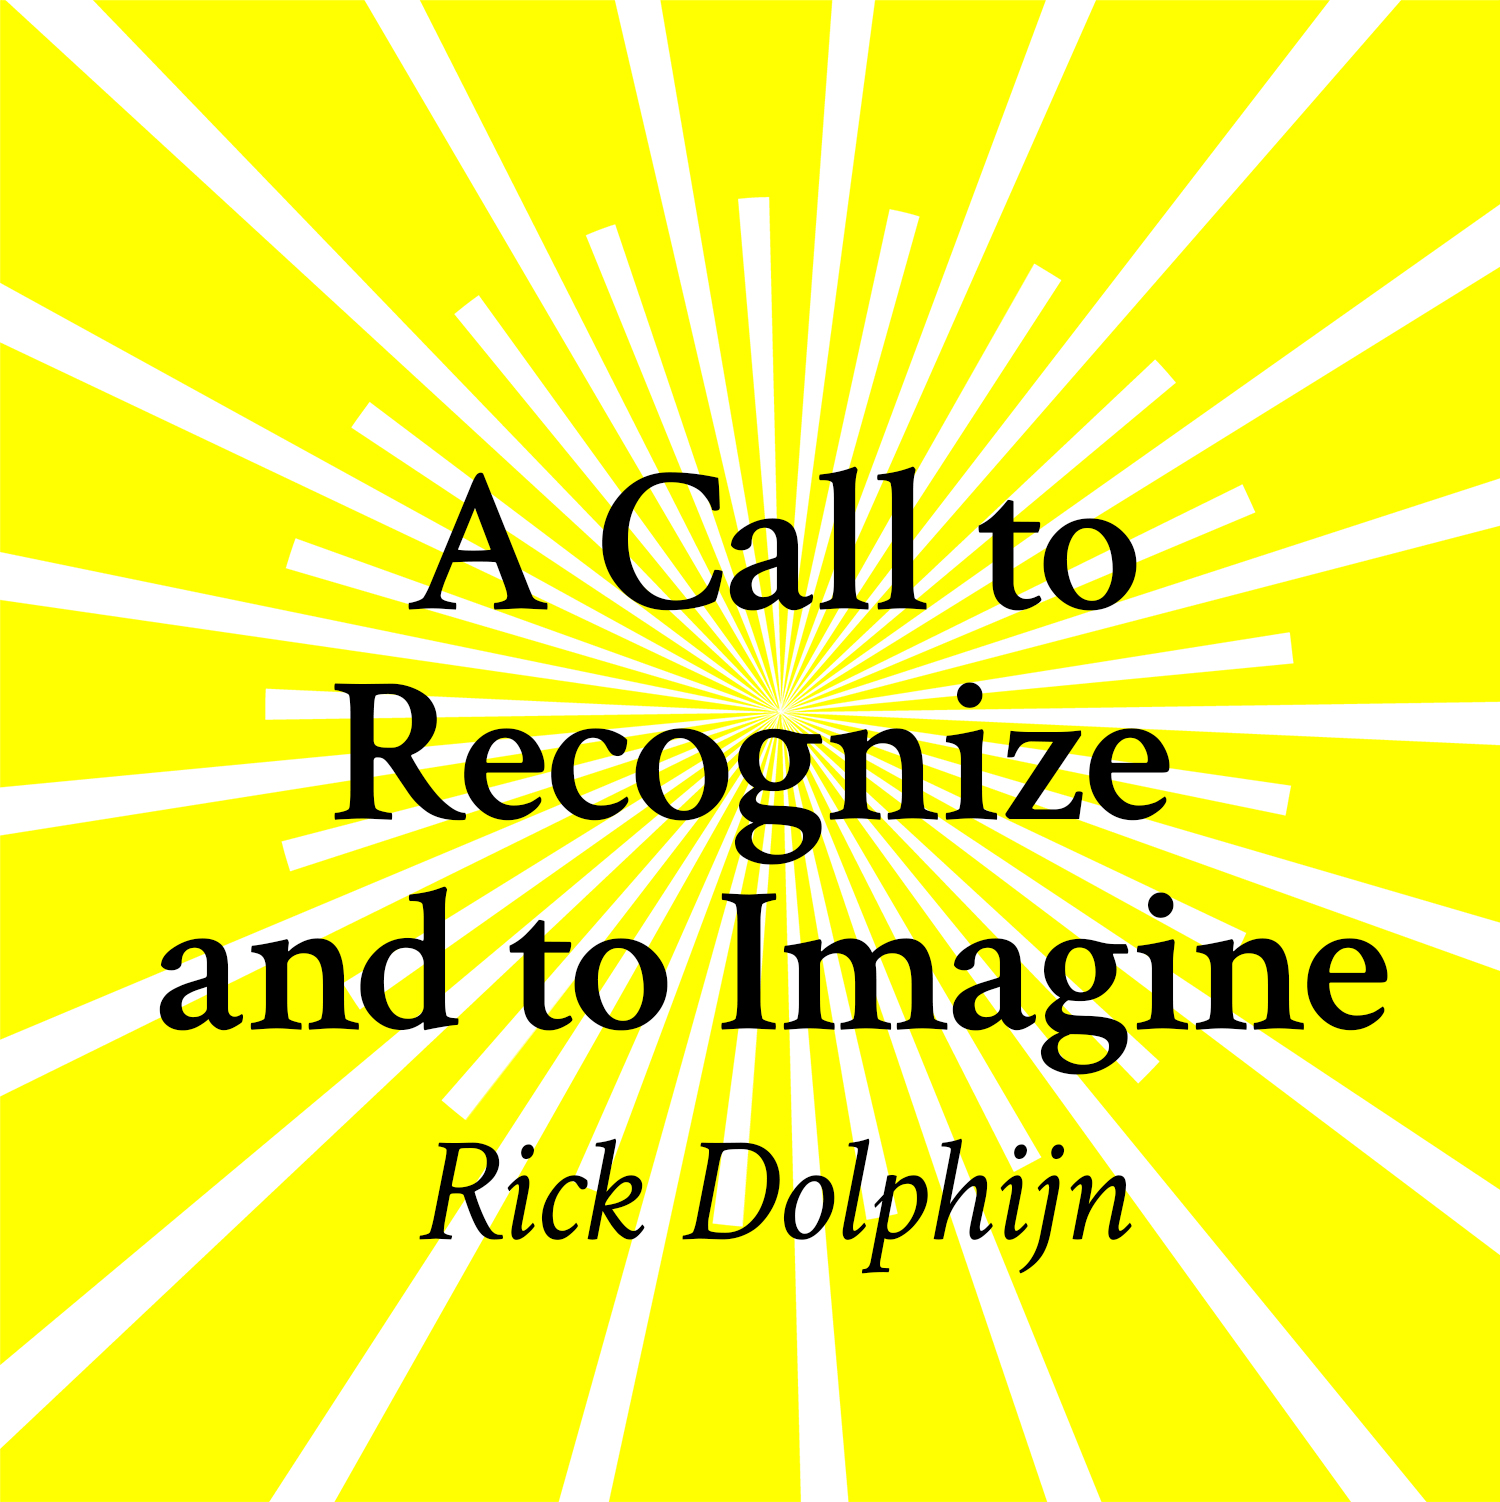 A Call to Recognize and to Imagine